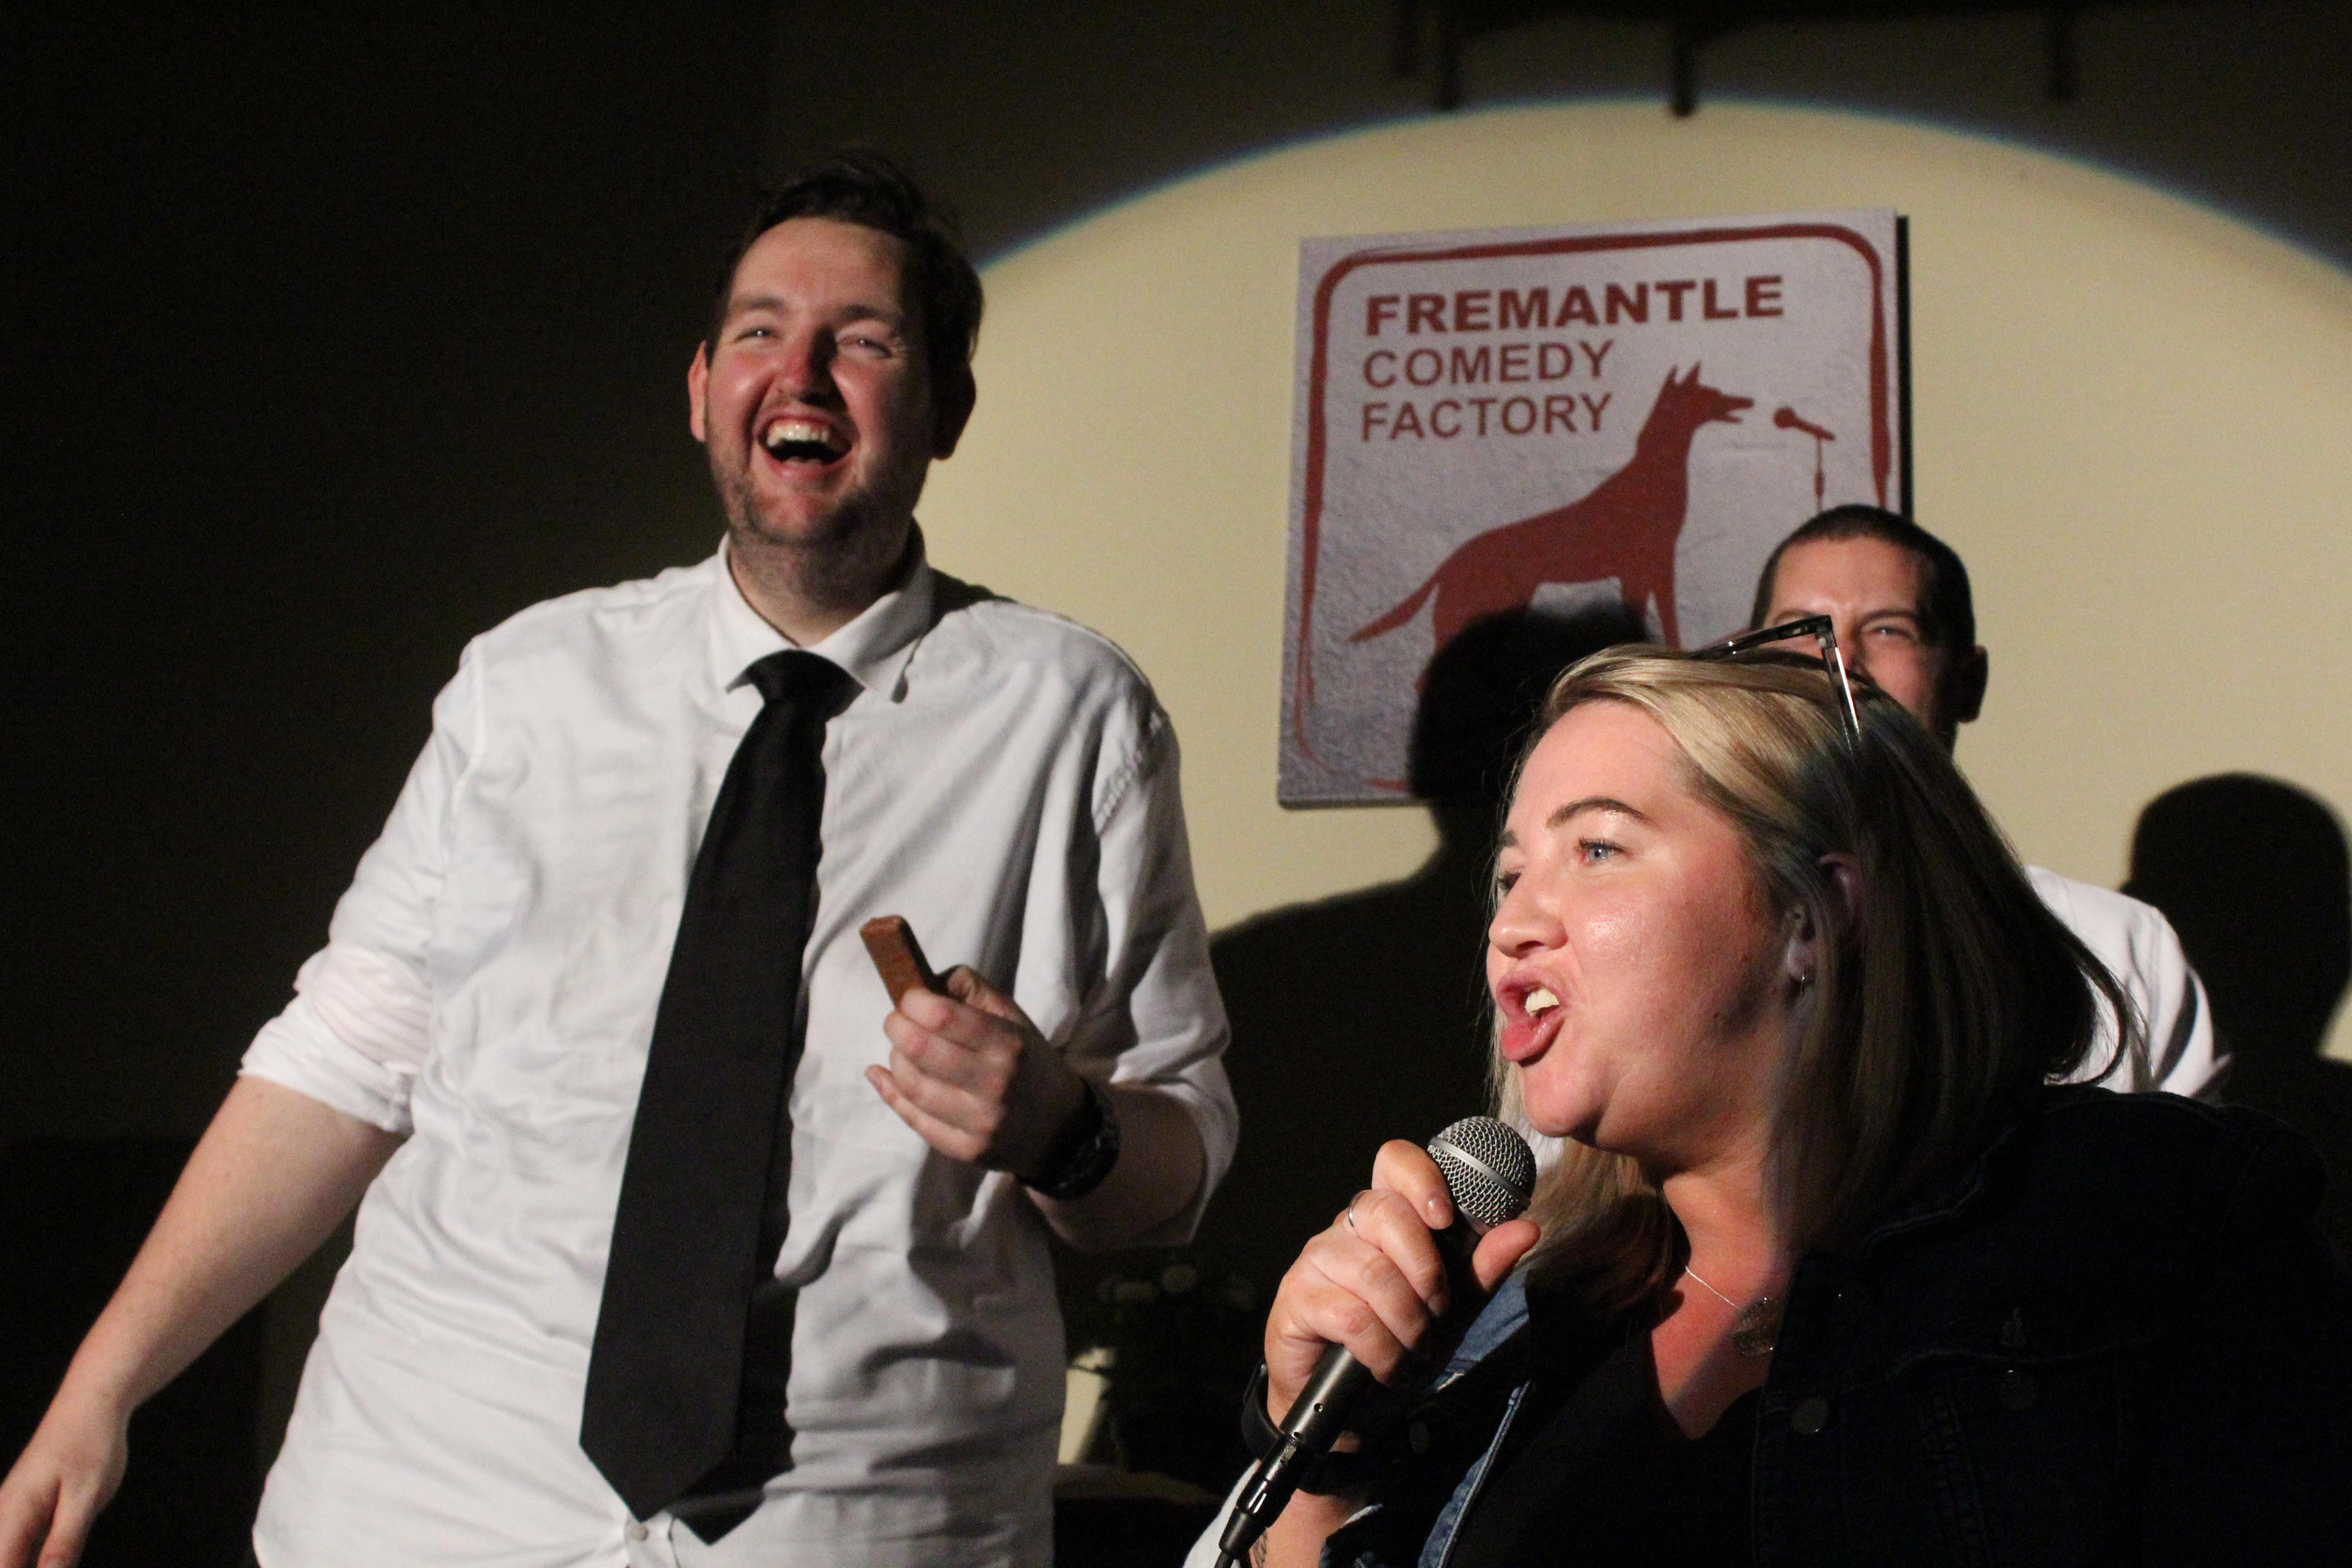 Fremantle Comedy Factory - Every Thursday Night @ the Sail and Anchor